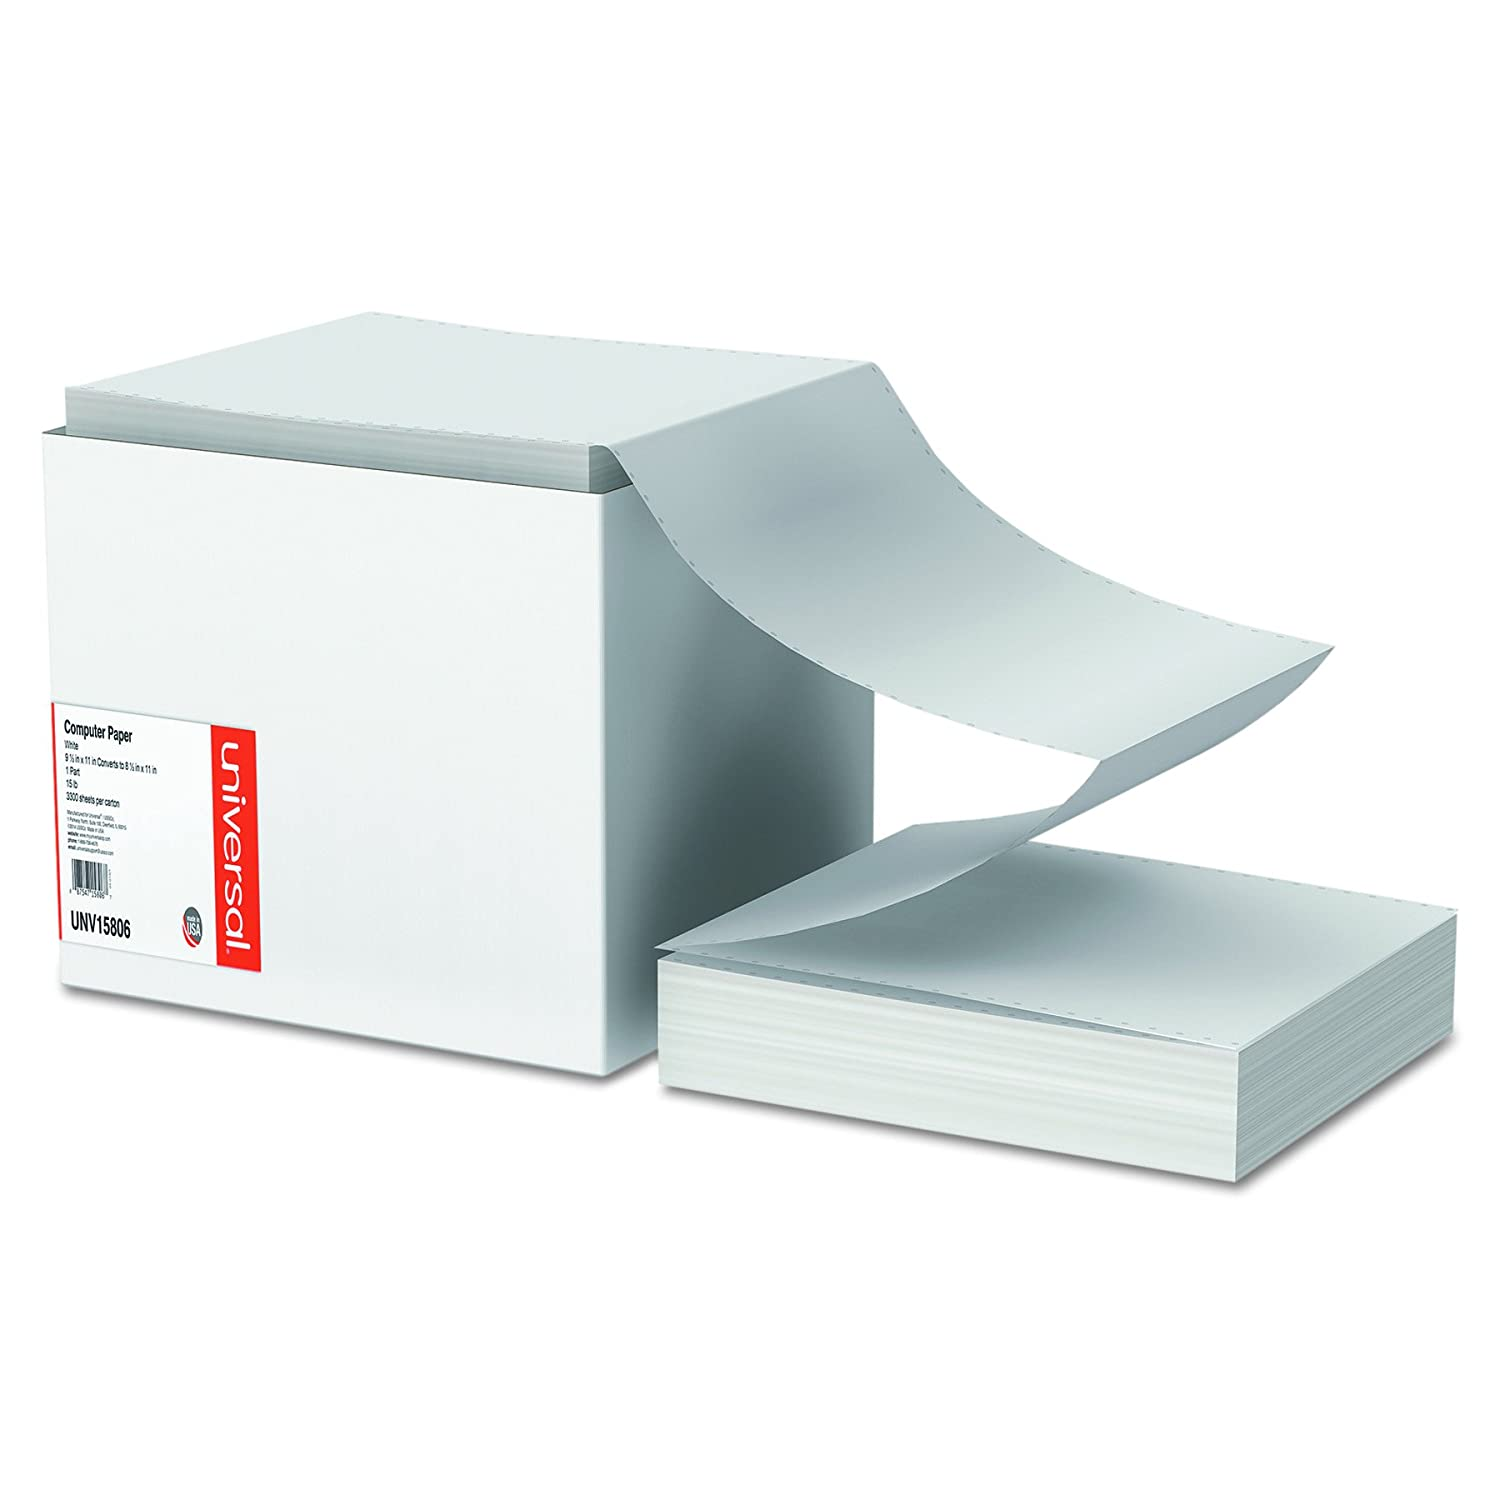 Universal Computer Paper, 15lb, 9-1/2 x 11, Letter Trim Perforations, White, 3300 Sheets (15806) 9-1/2 x 11